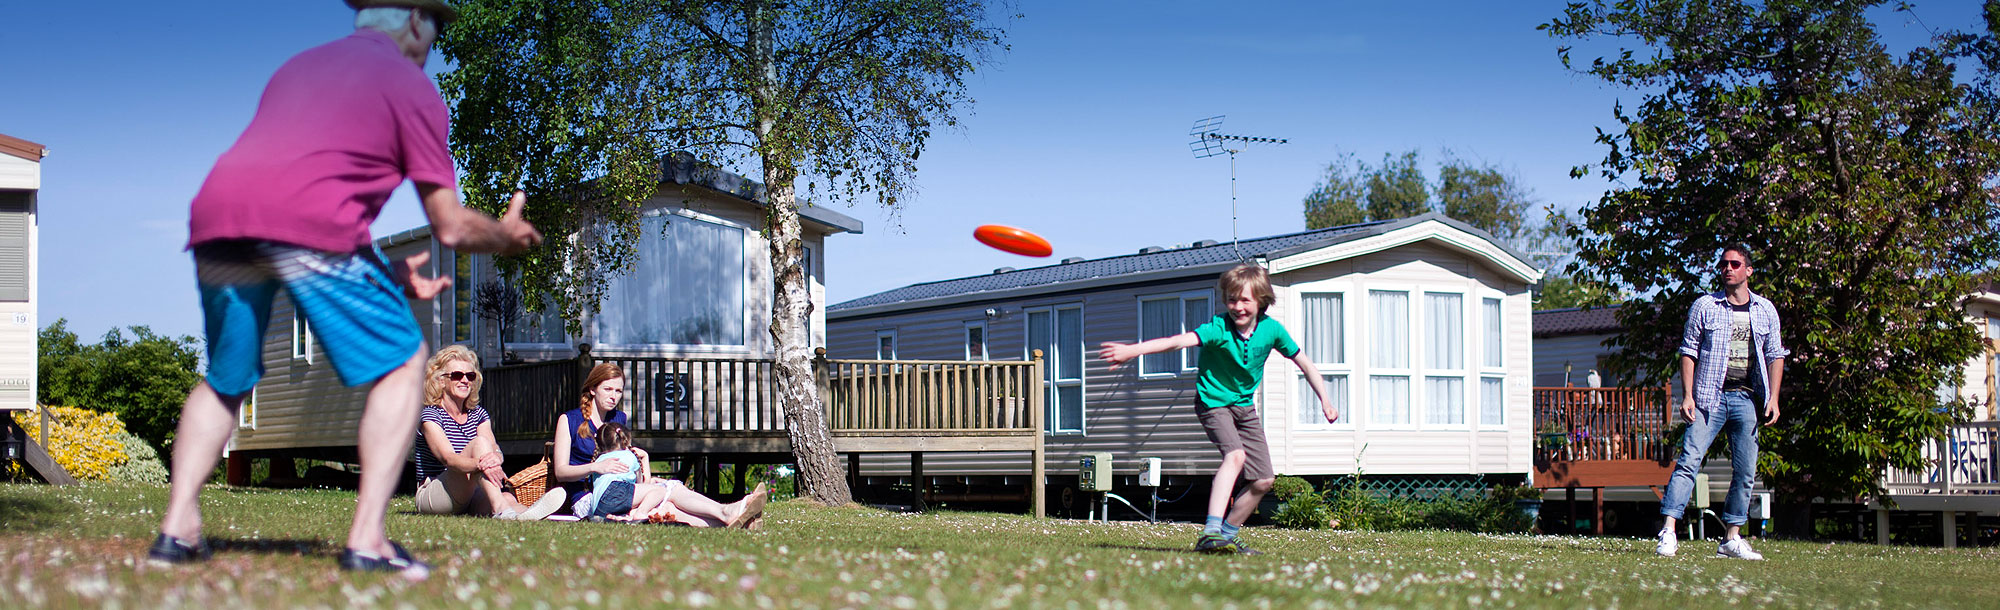 Caravan holidays in Essex